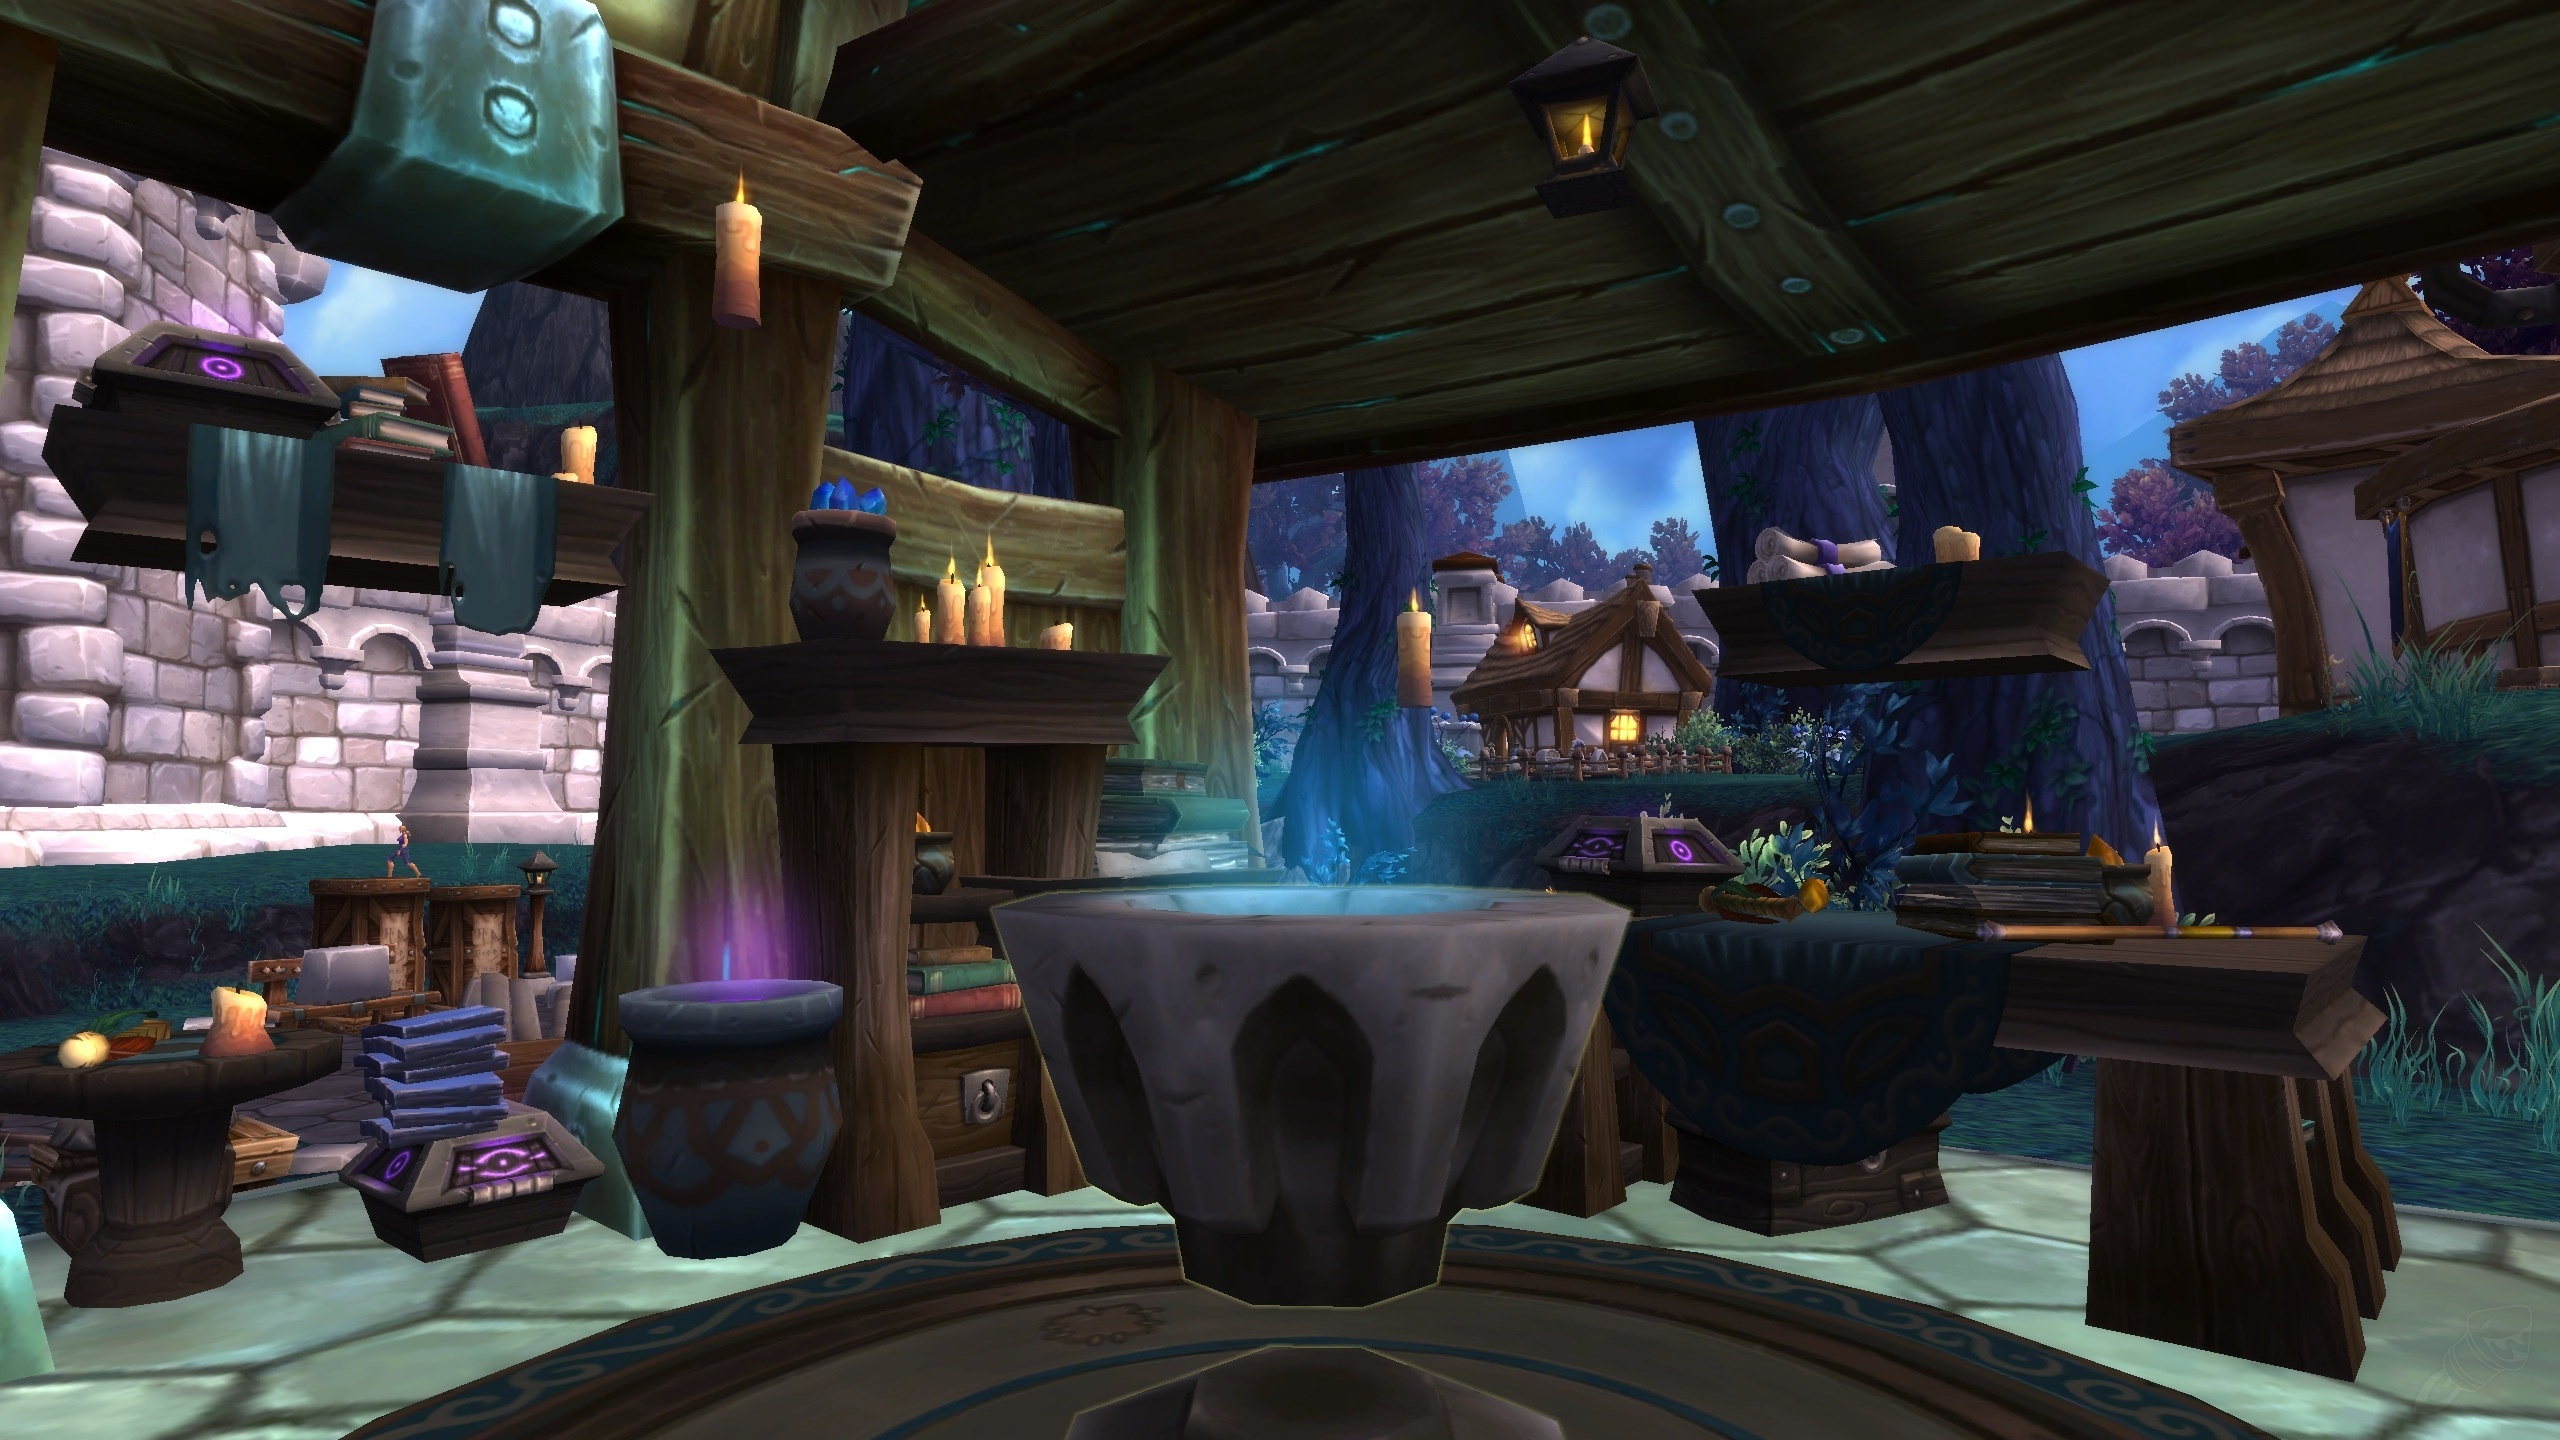 Warlords of draenor enchanting overview guides wowhead this guide covers all of the warlords of draenor enchanting additions and changes as well as enchanting at the garrison profession perks are removed but malvernweather Image collections